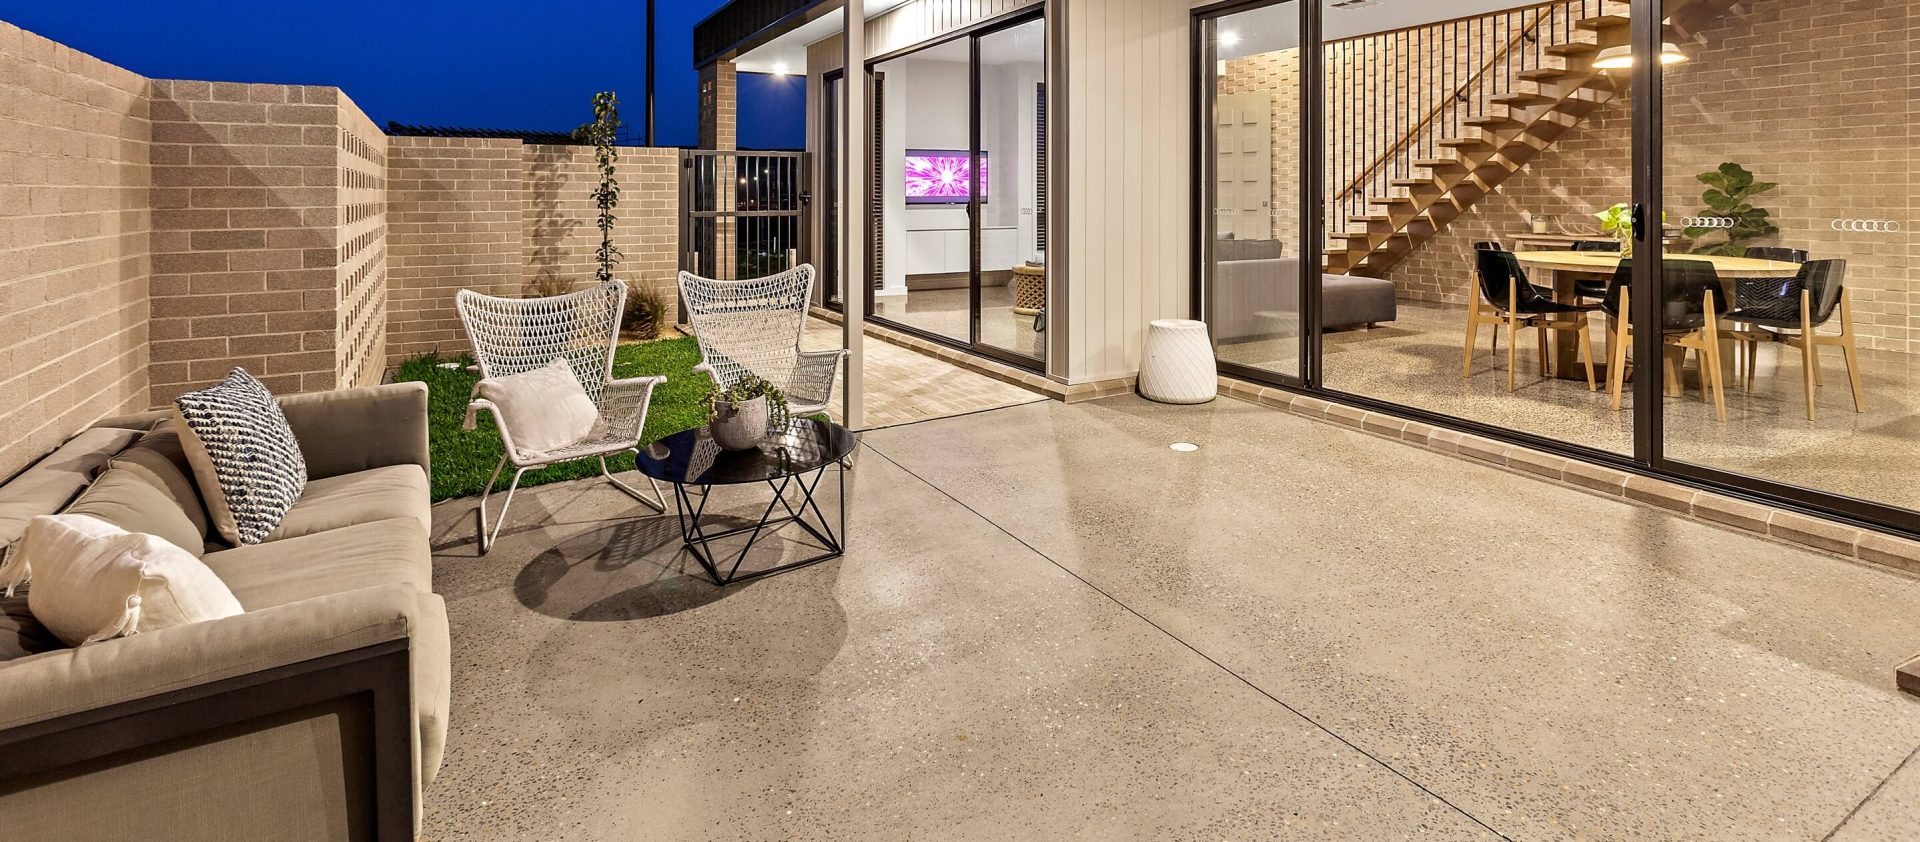 Outdoor setting showcasing polished concrete floors